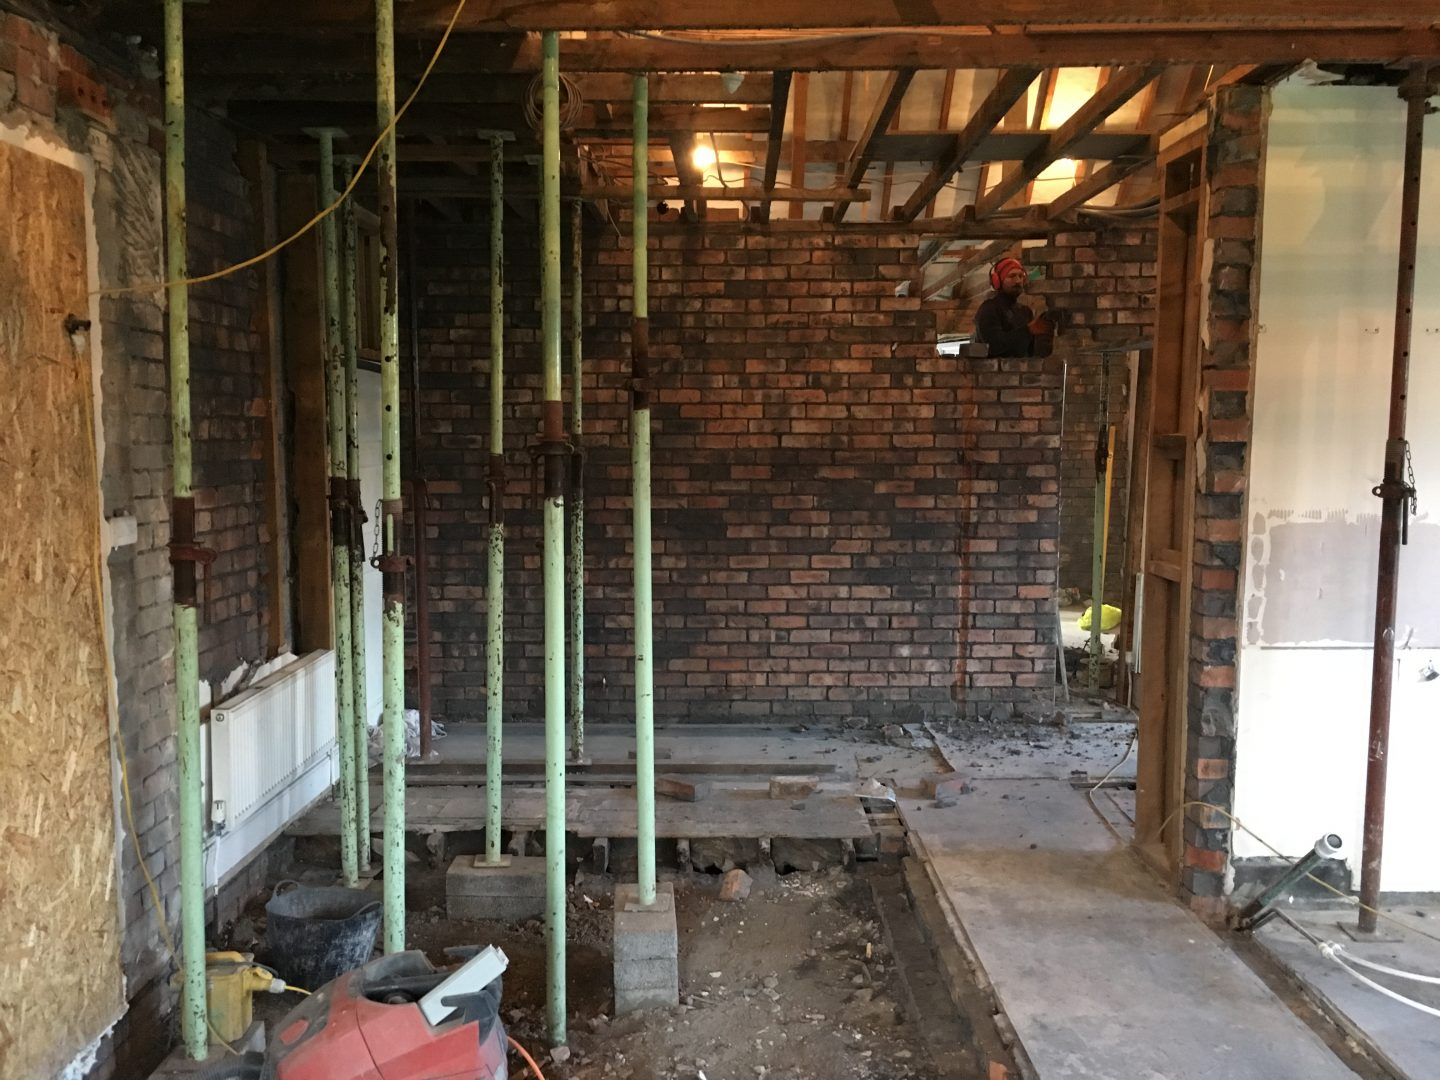 Old Garage Conversion to Kitchen - Showing Progress Made in the Construction Stage